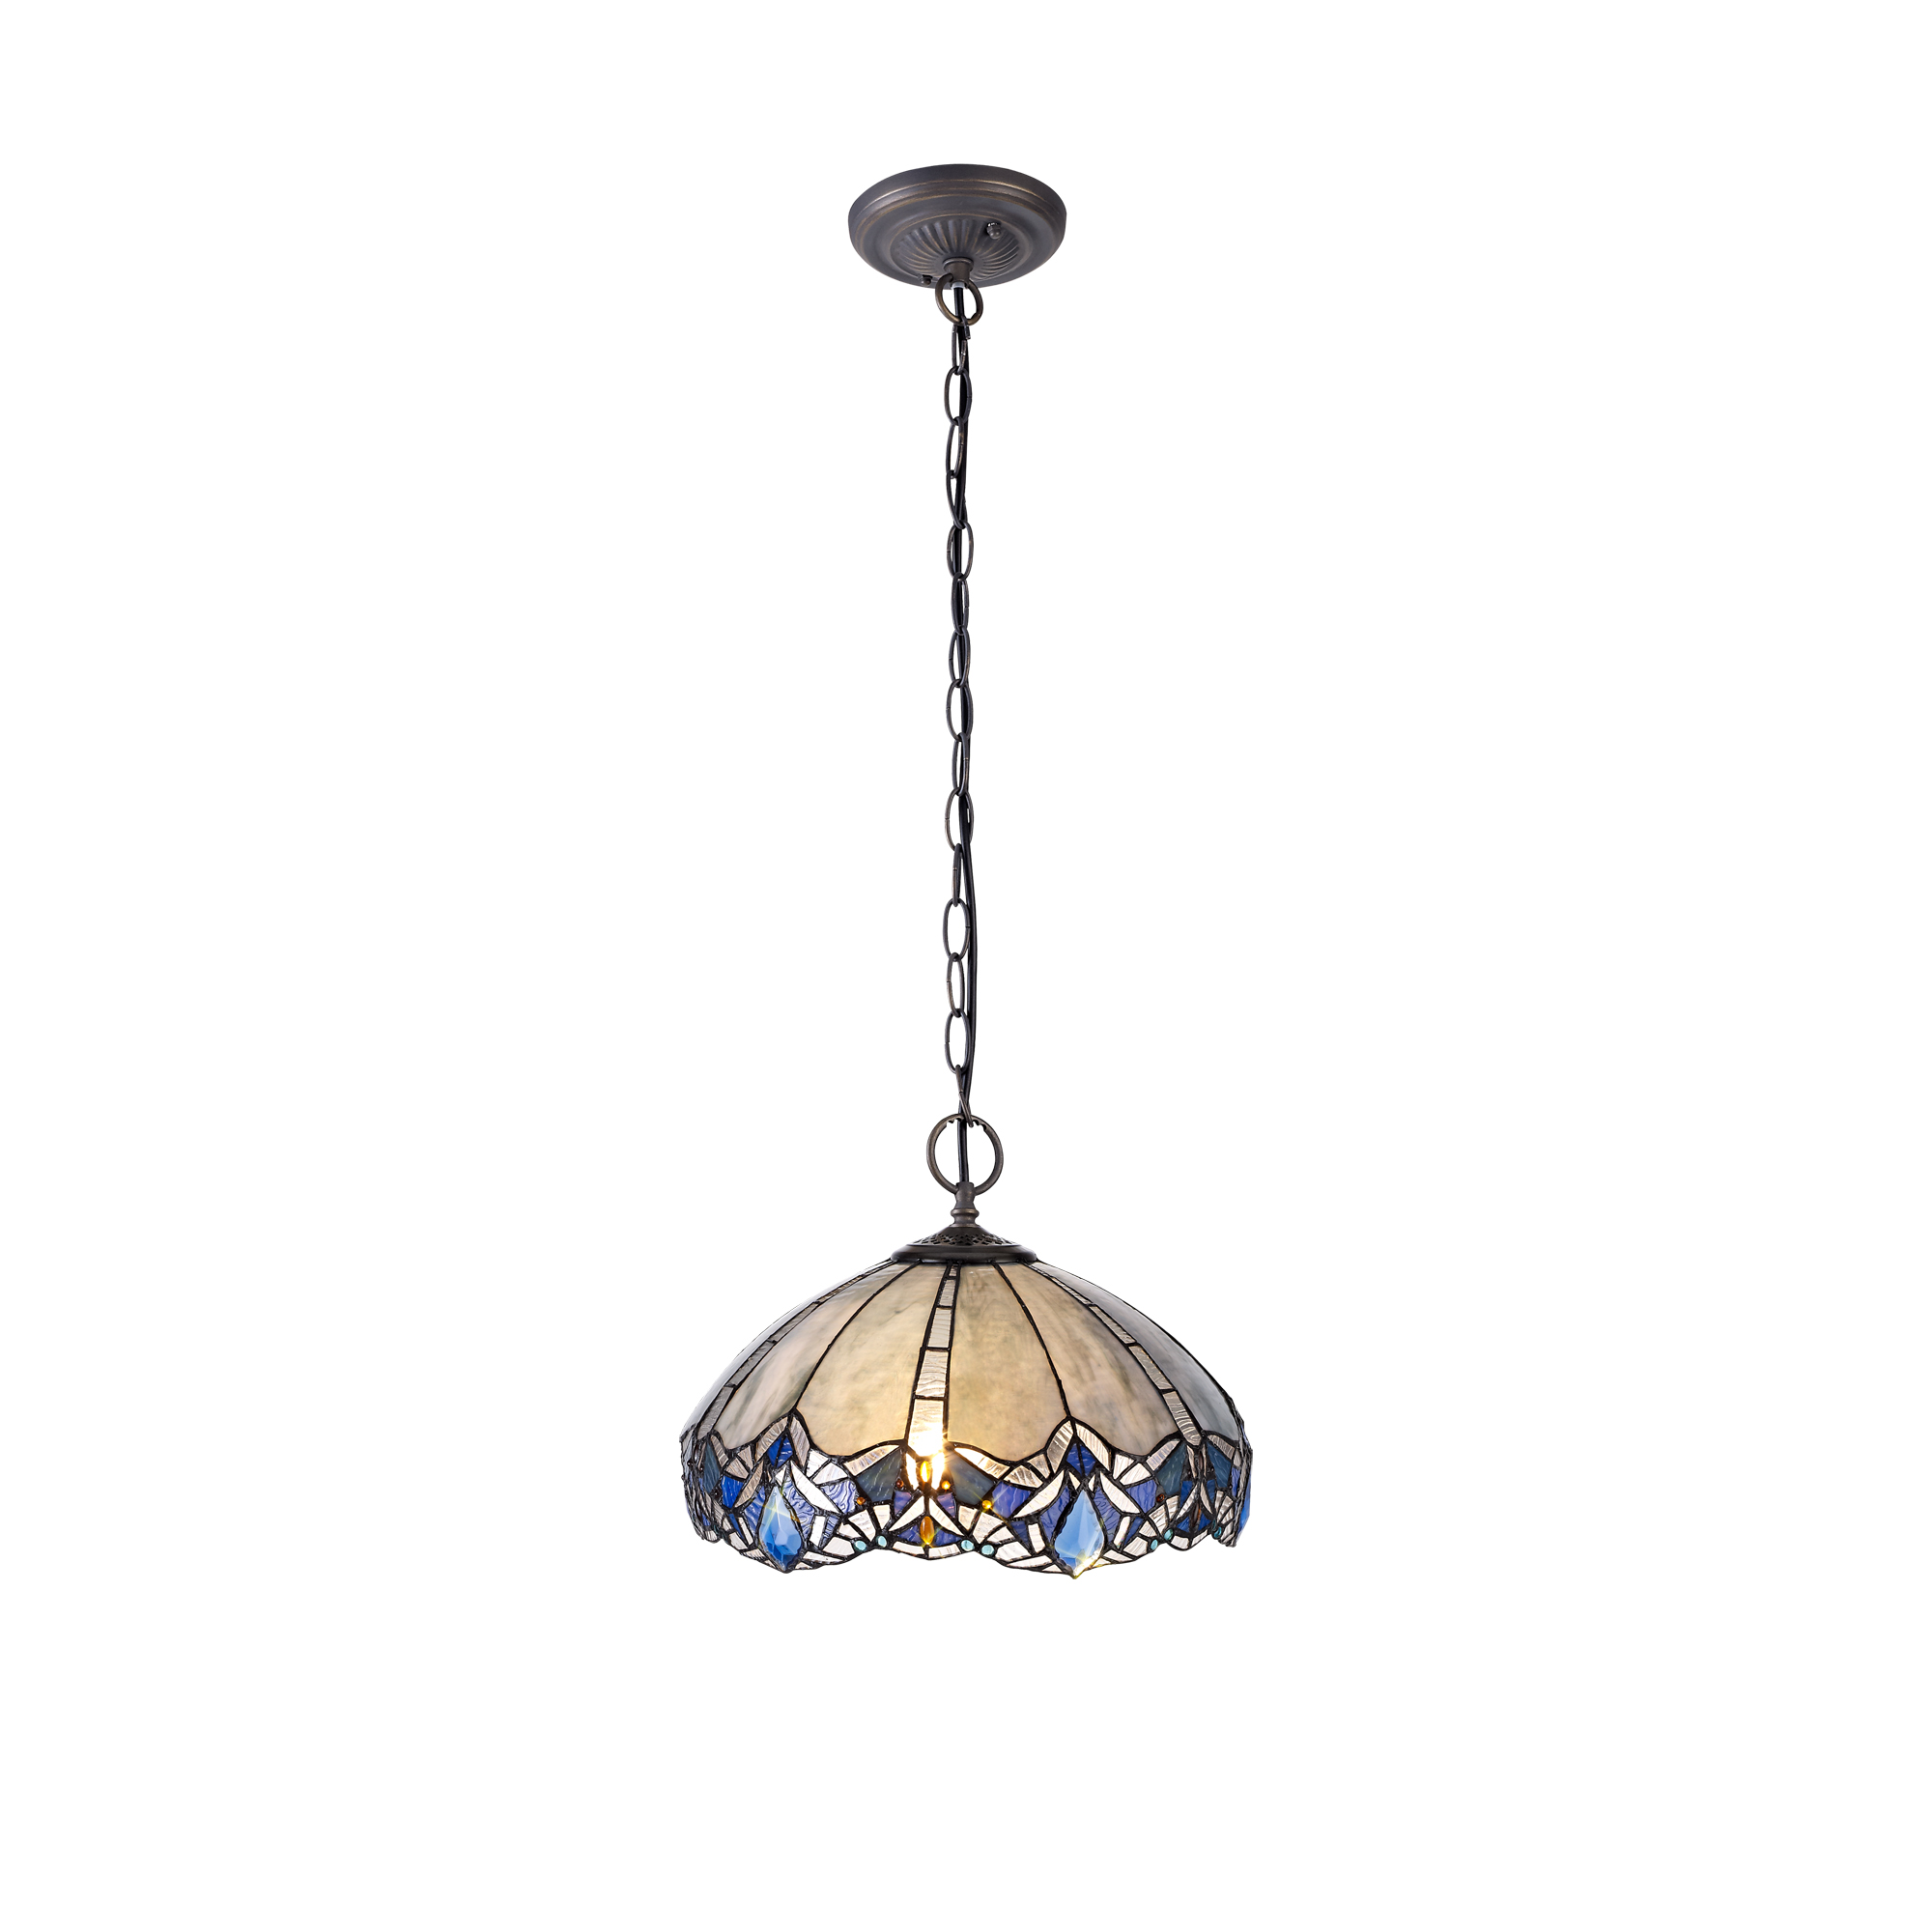 2 Light Downlight Pendant E27 With 40cm Tiffany Shade, Blue/Clear Crystal/Aged Antique Brass